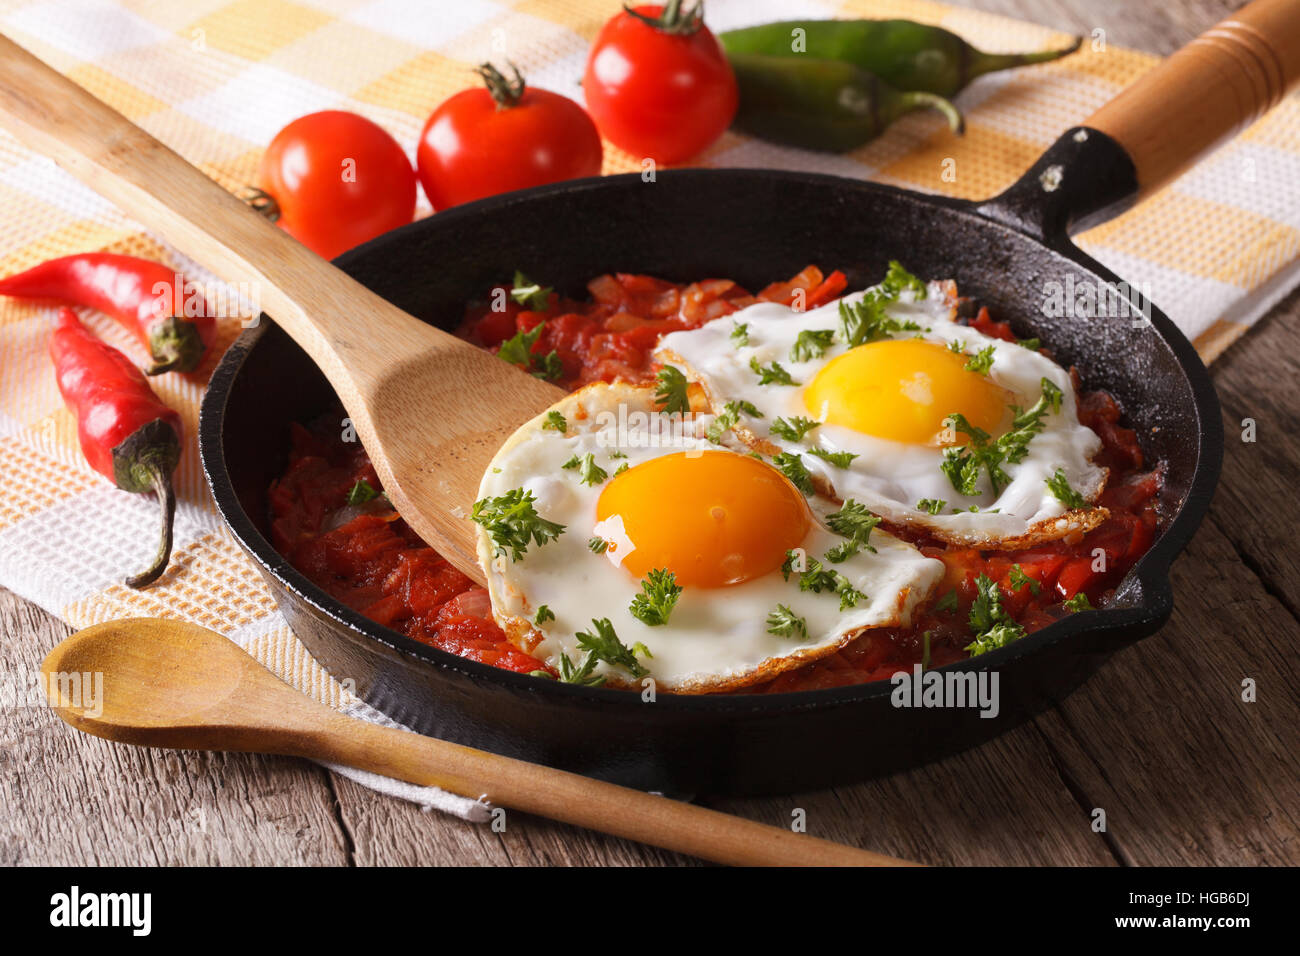 Traditional Mexican breakfast fried egg with salsa closeup in the pan. Horizontal - Stock Image